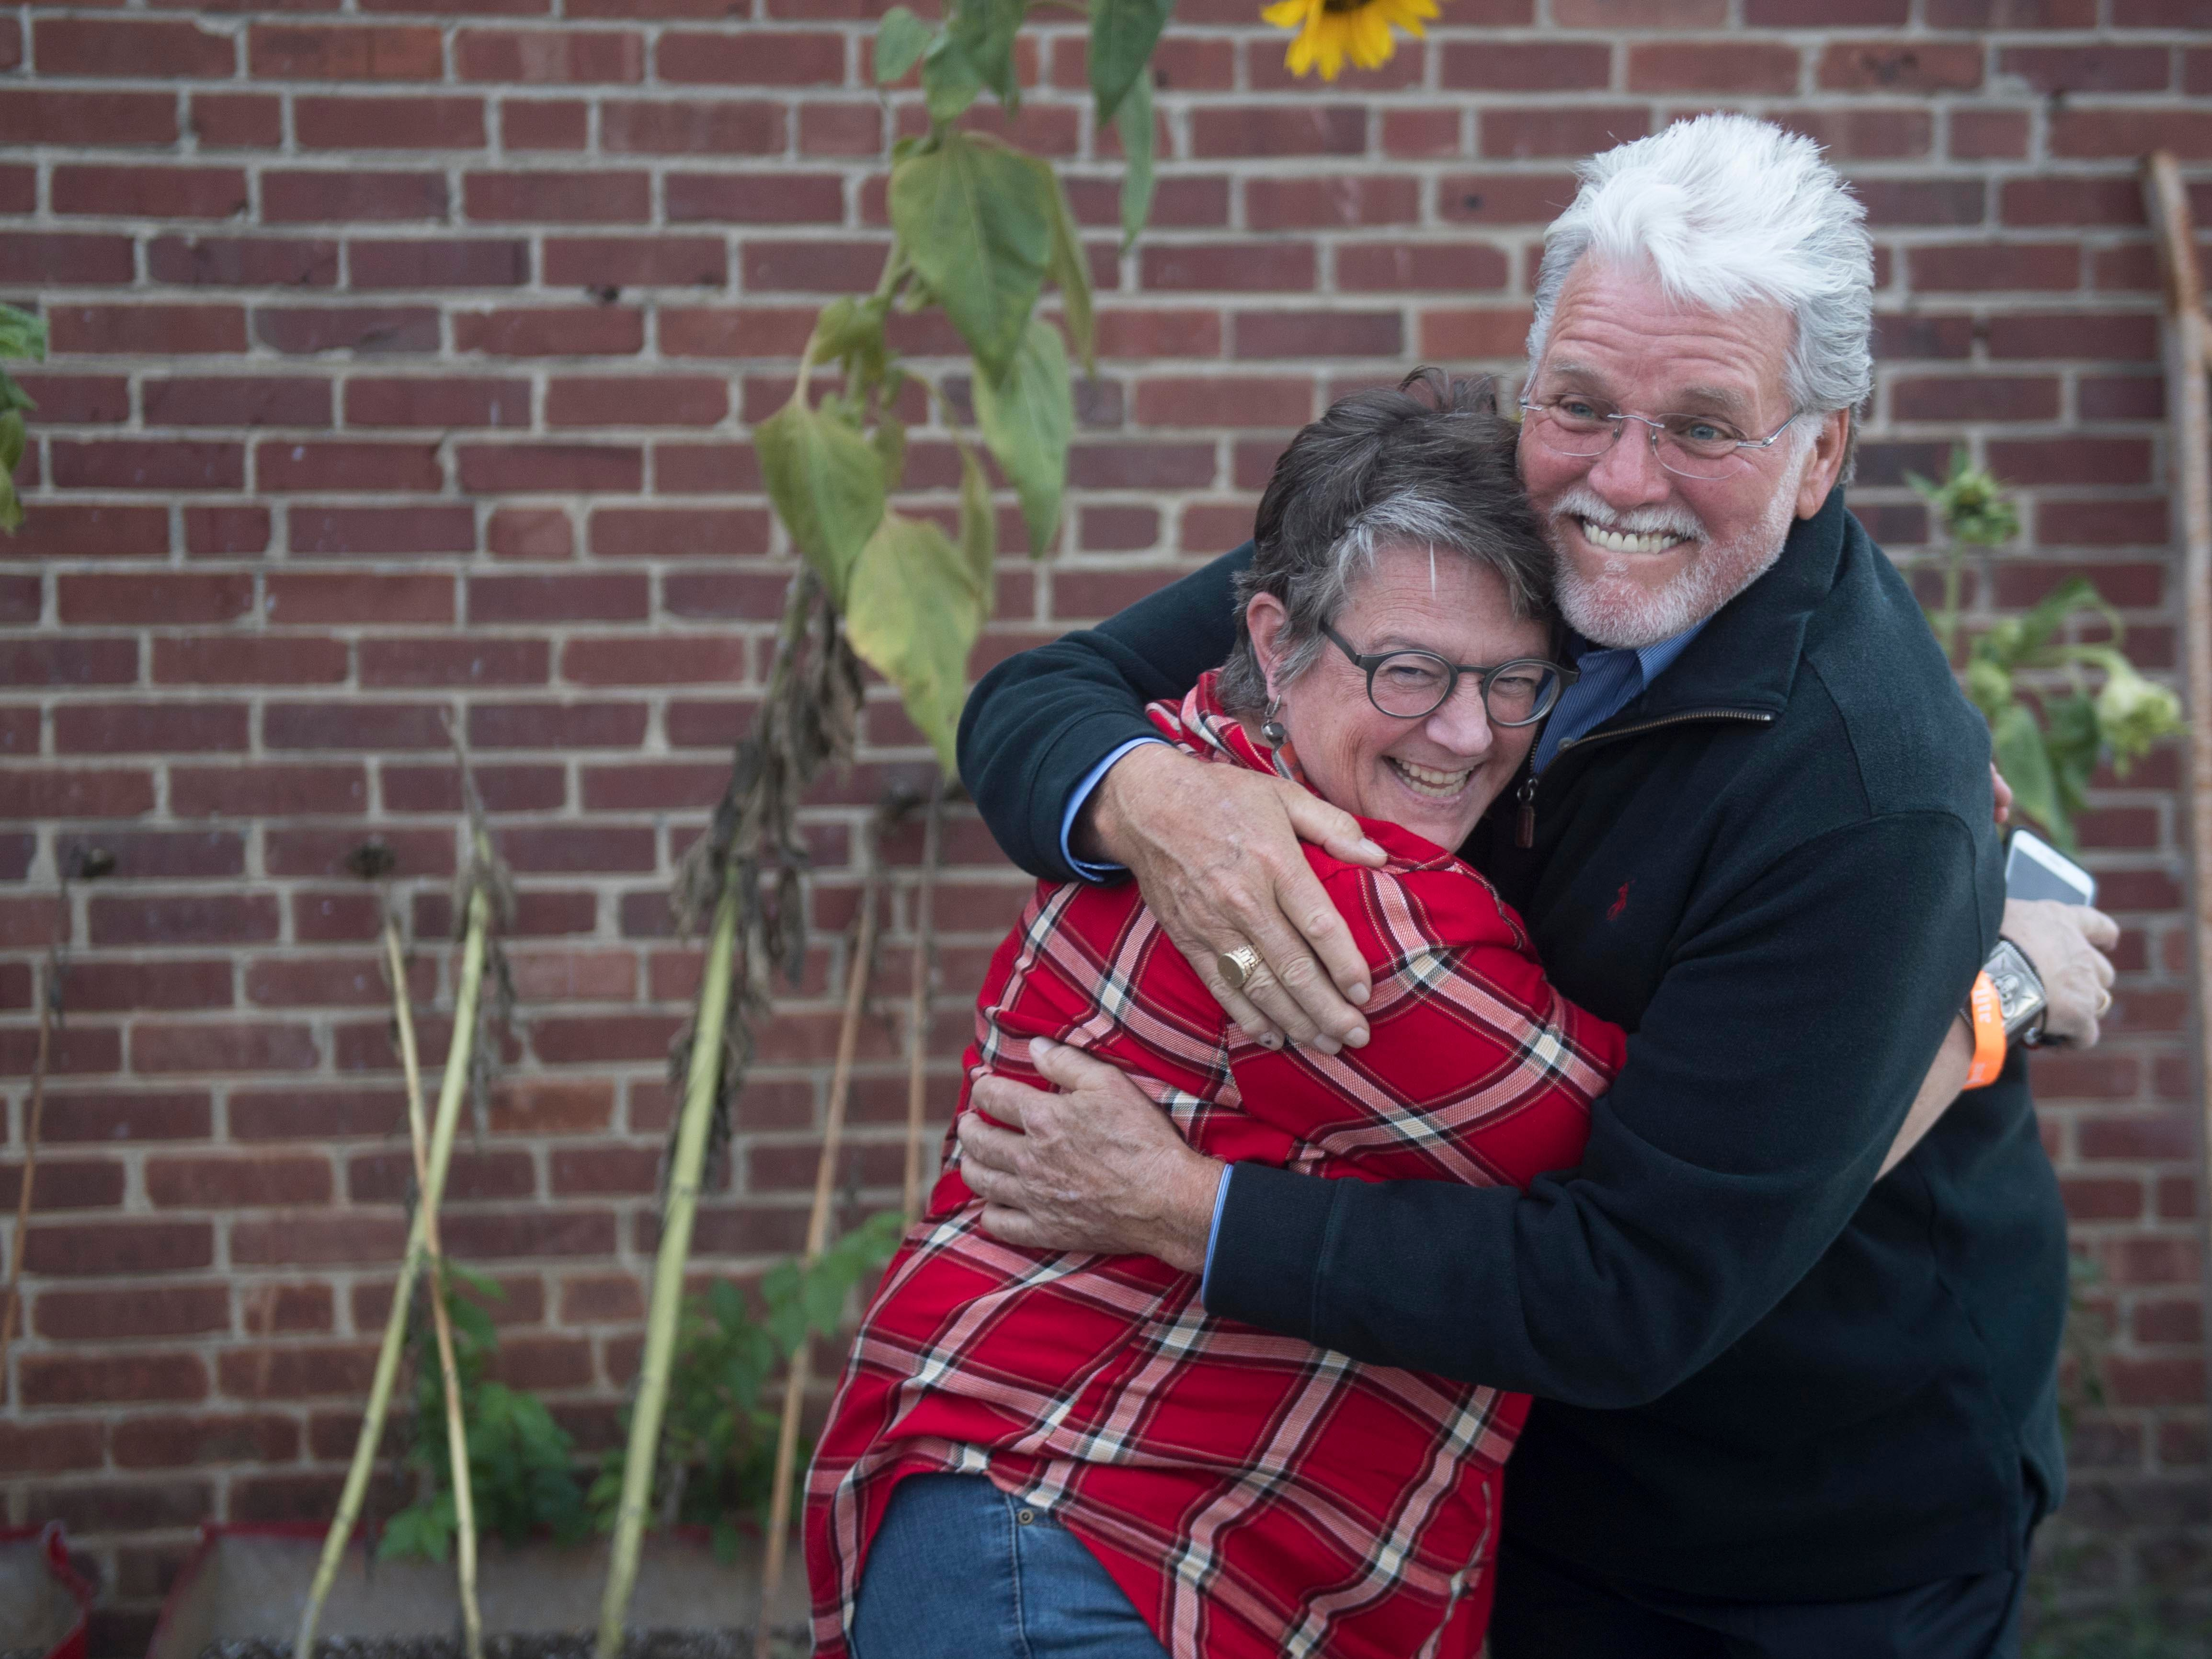 Con Hunley greets Holly Hambright before performing at The Corner Lounge on Friday, October 19, 2018.